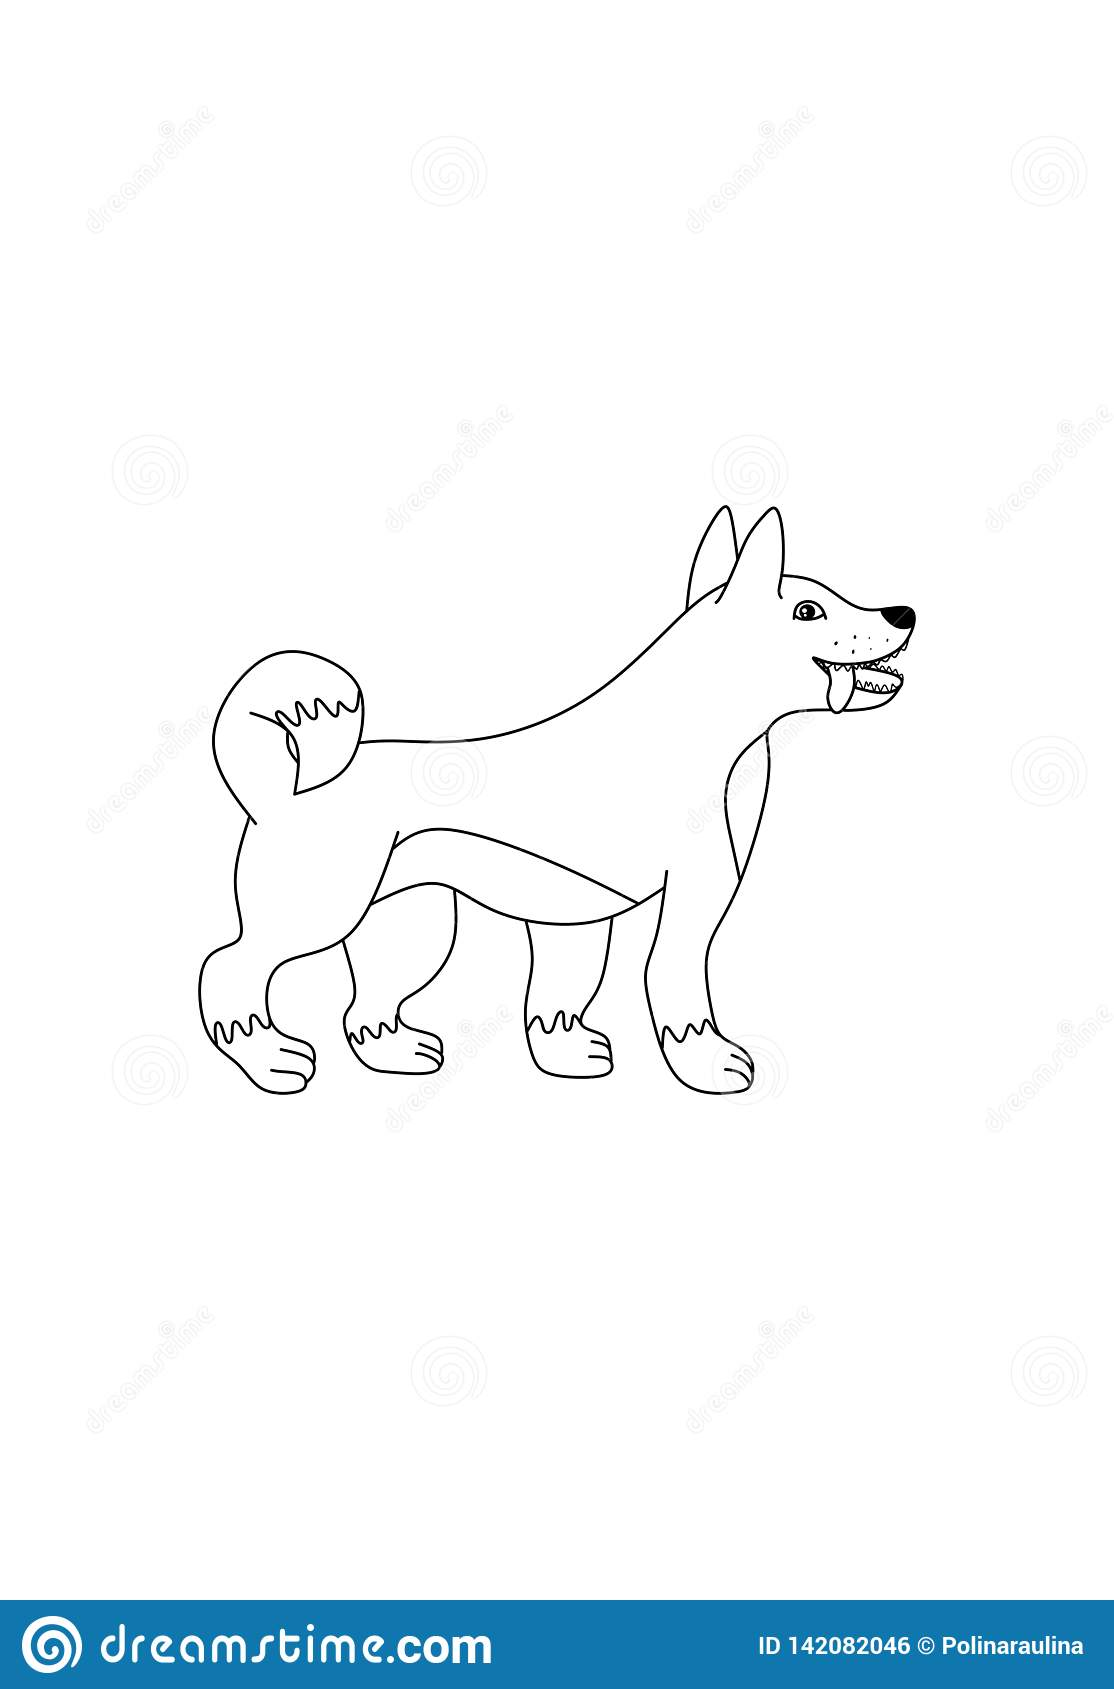 Decrit Dessin Vecteur De Chien De Schema Photo Stock